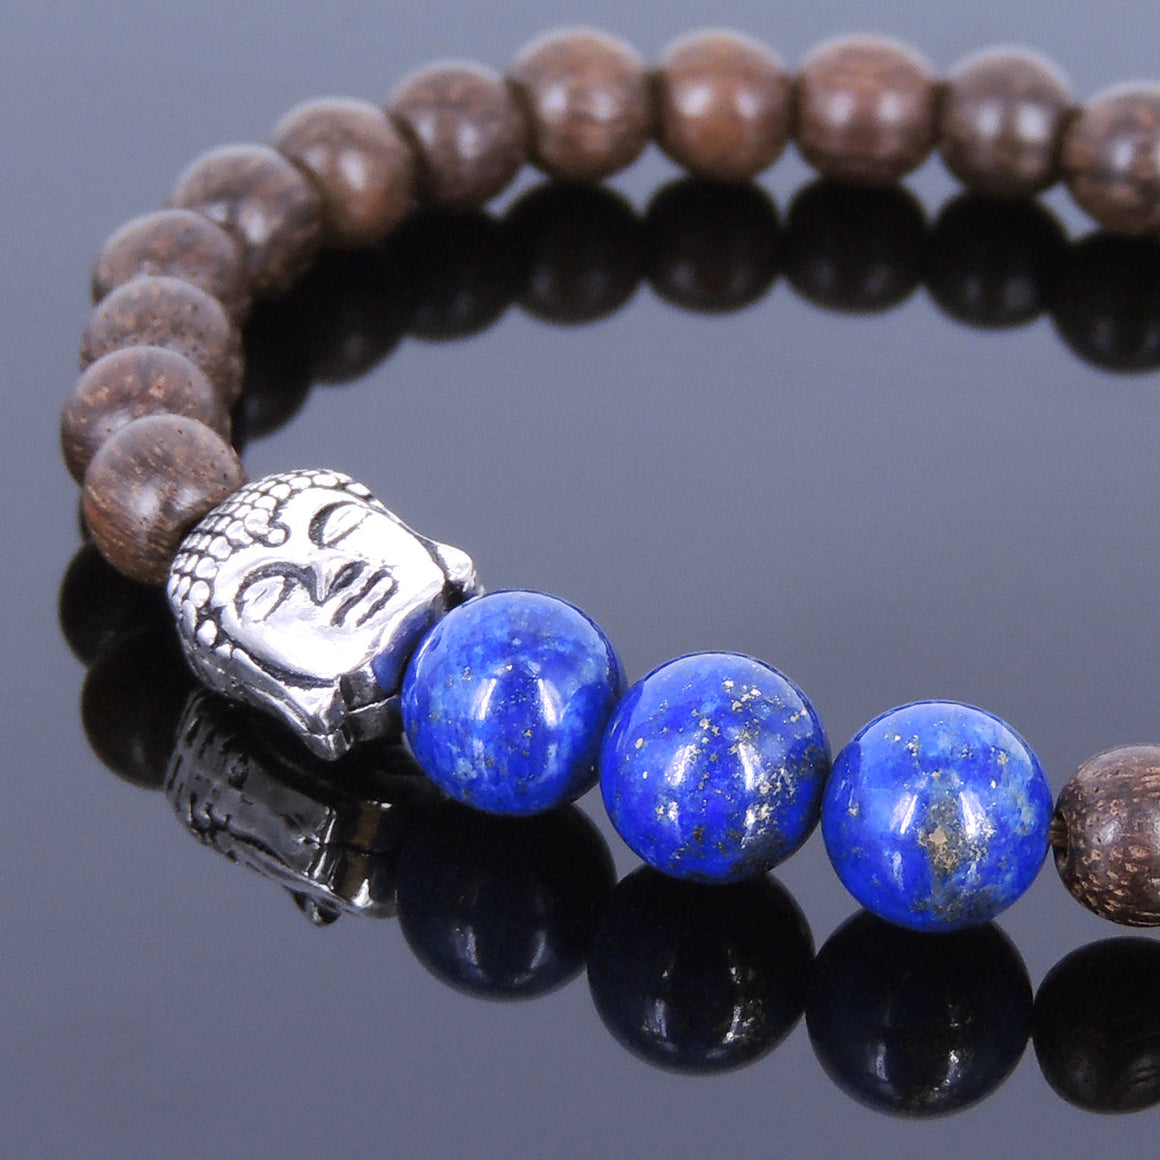 Red Agarwood & Lapis Lazuli Meditation Bracelet with S925 Sterling Silver Guanyin Buddha Bead - Handmade by Gem & Silver BR438